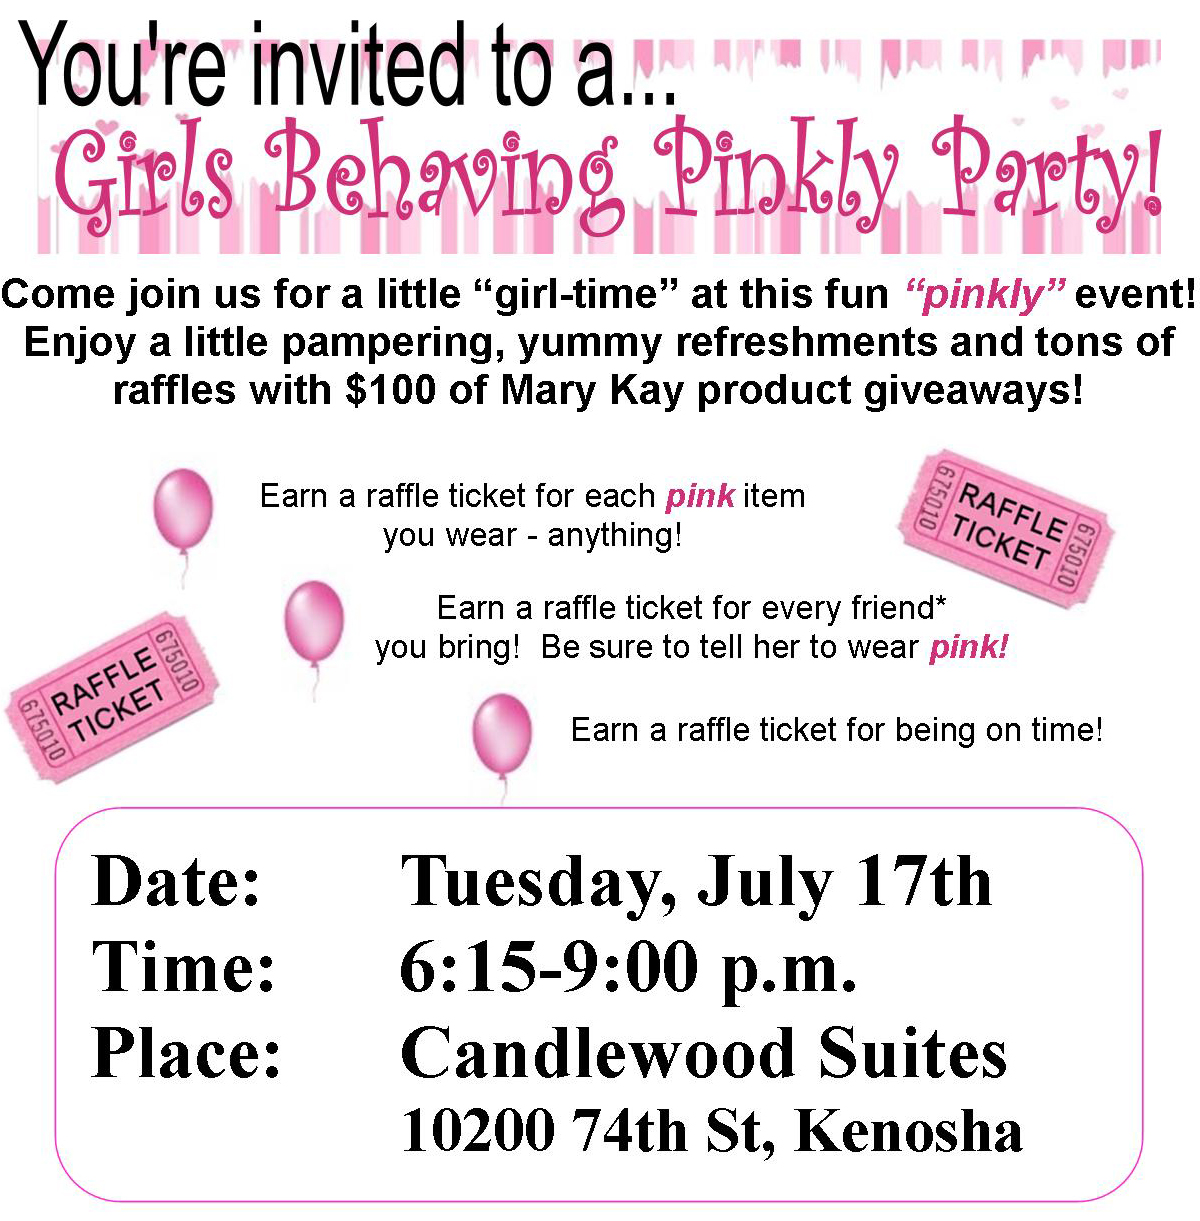 Free Printable Mary Kay Invitations http://www.krkpoland.pl/css/mary ...